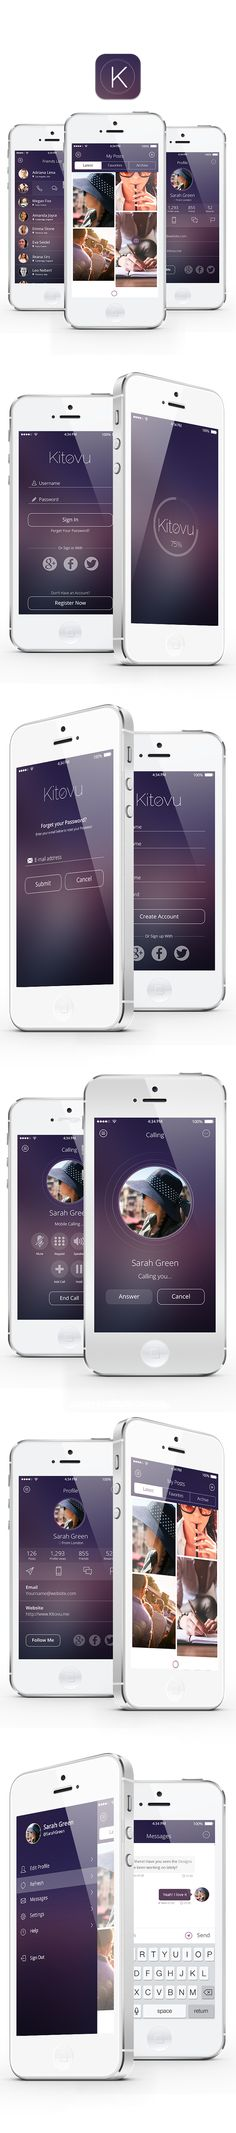 Kitovu IOS 8 UI/UX App Design by Doaa Fadally, via Behance